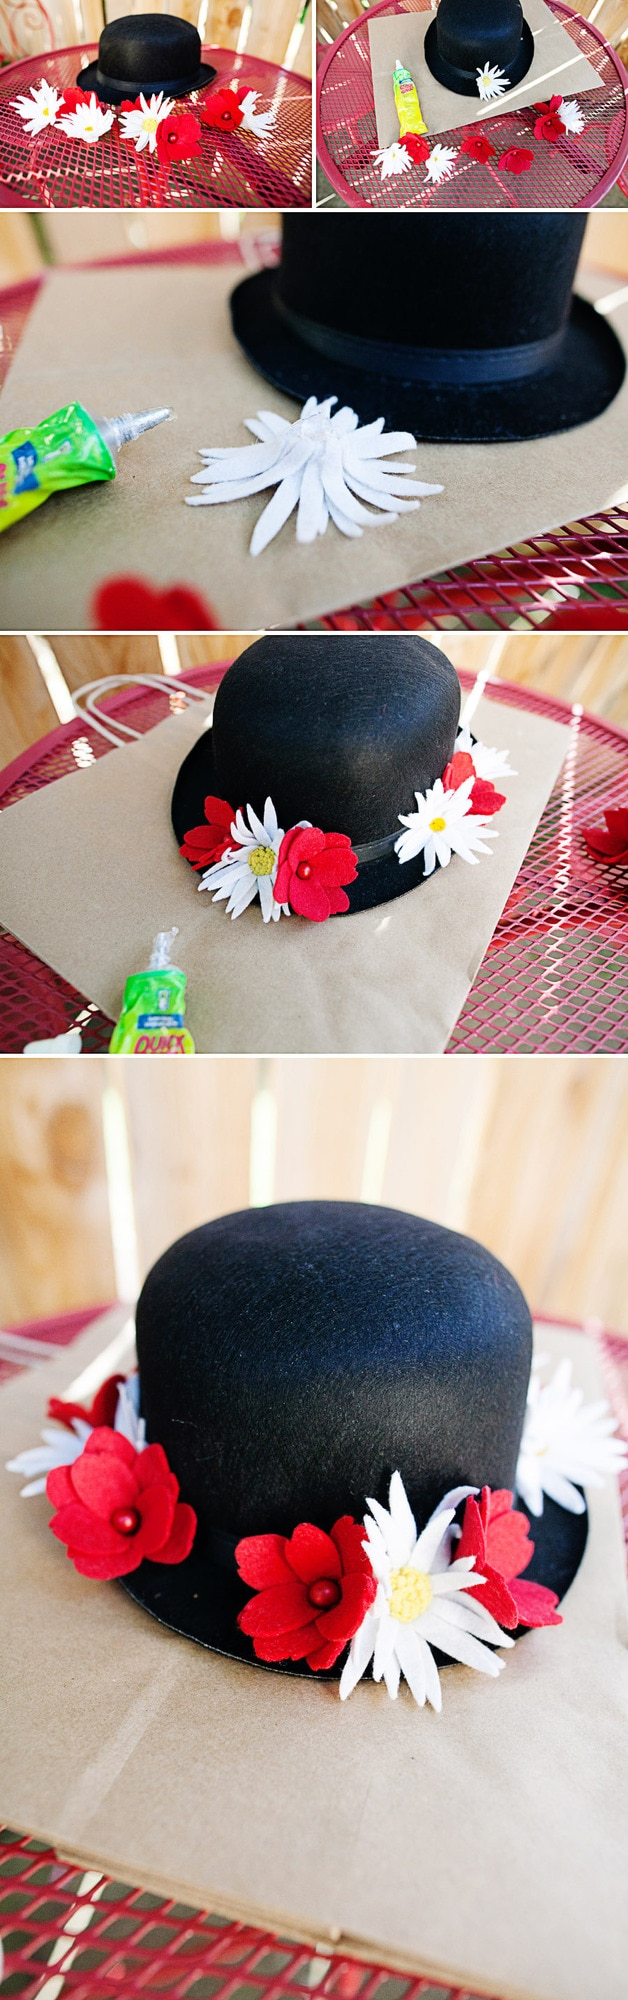 DIY Mary Popping Hat tutorial and adorable photo shoot! { lilluna.com }